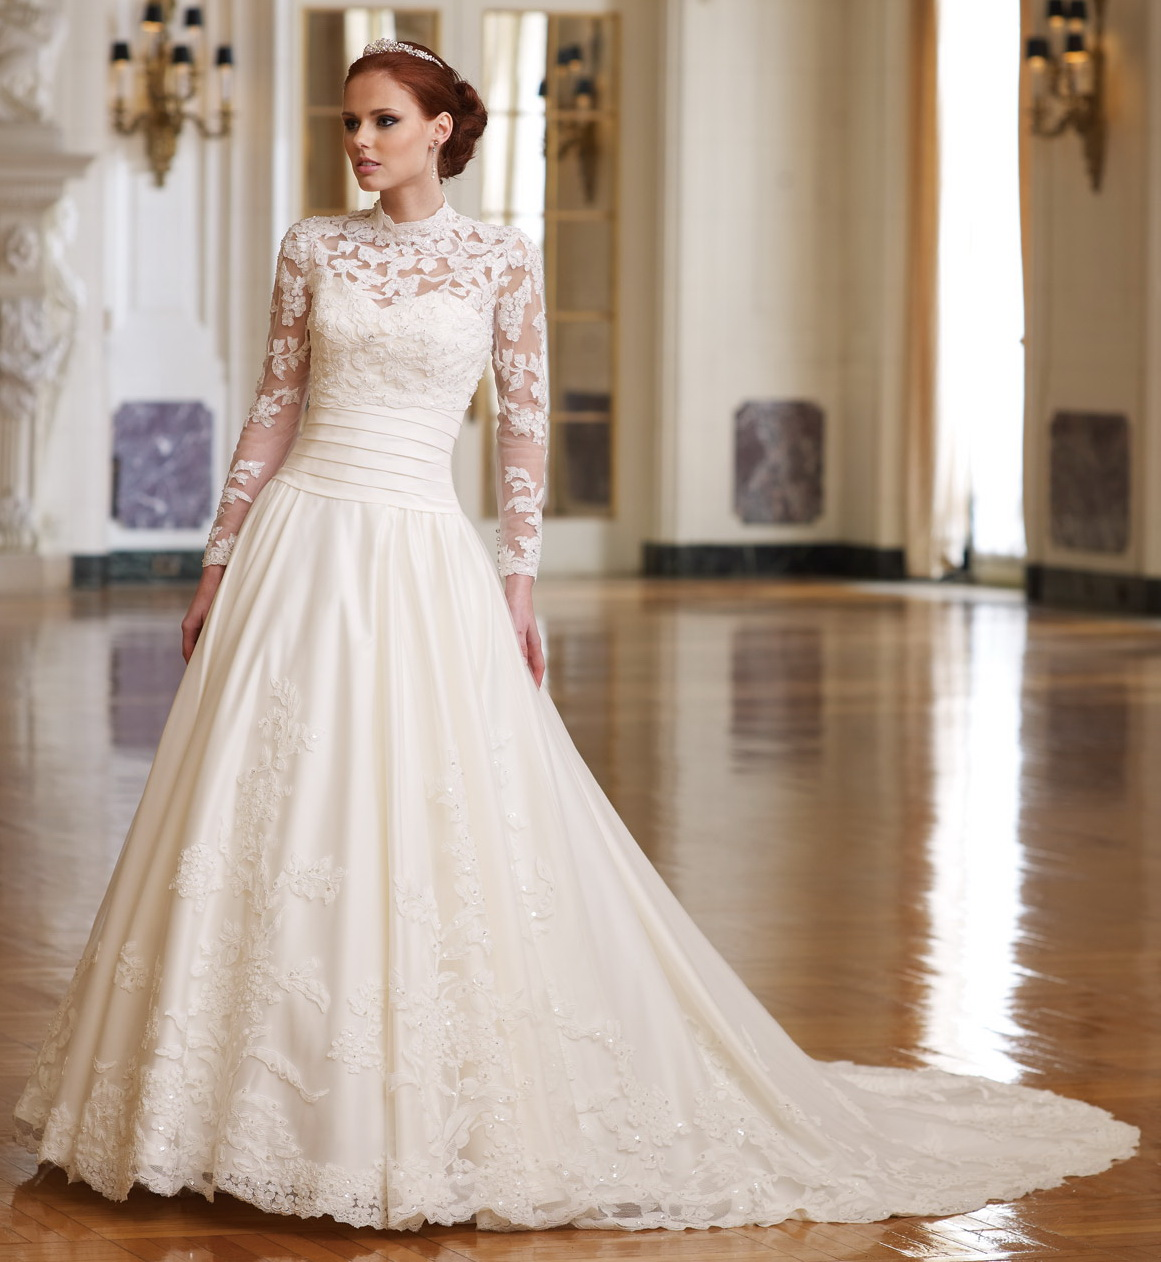 Photos Of Lace Wedding Gowns : Lace wedding dress